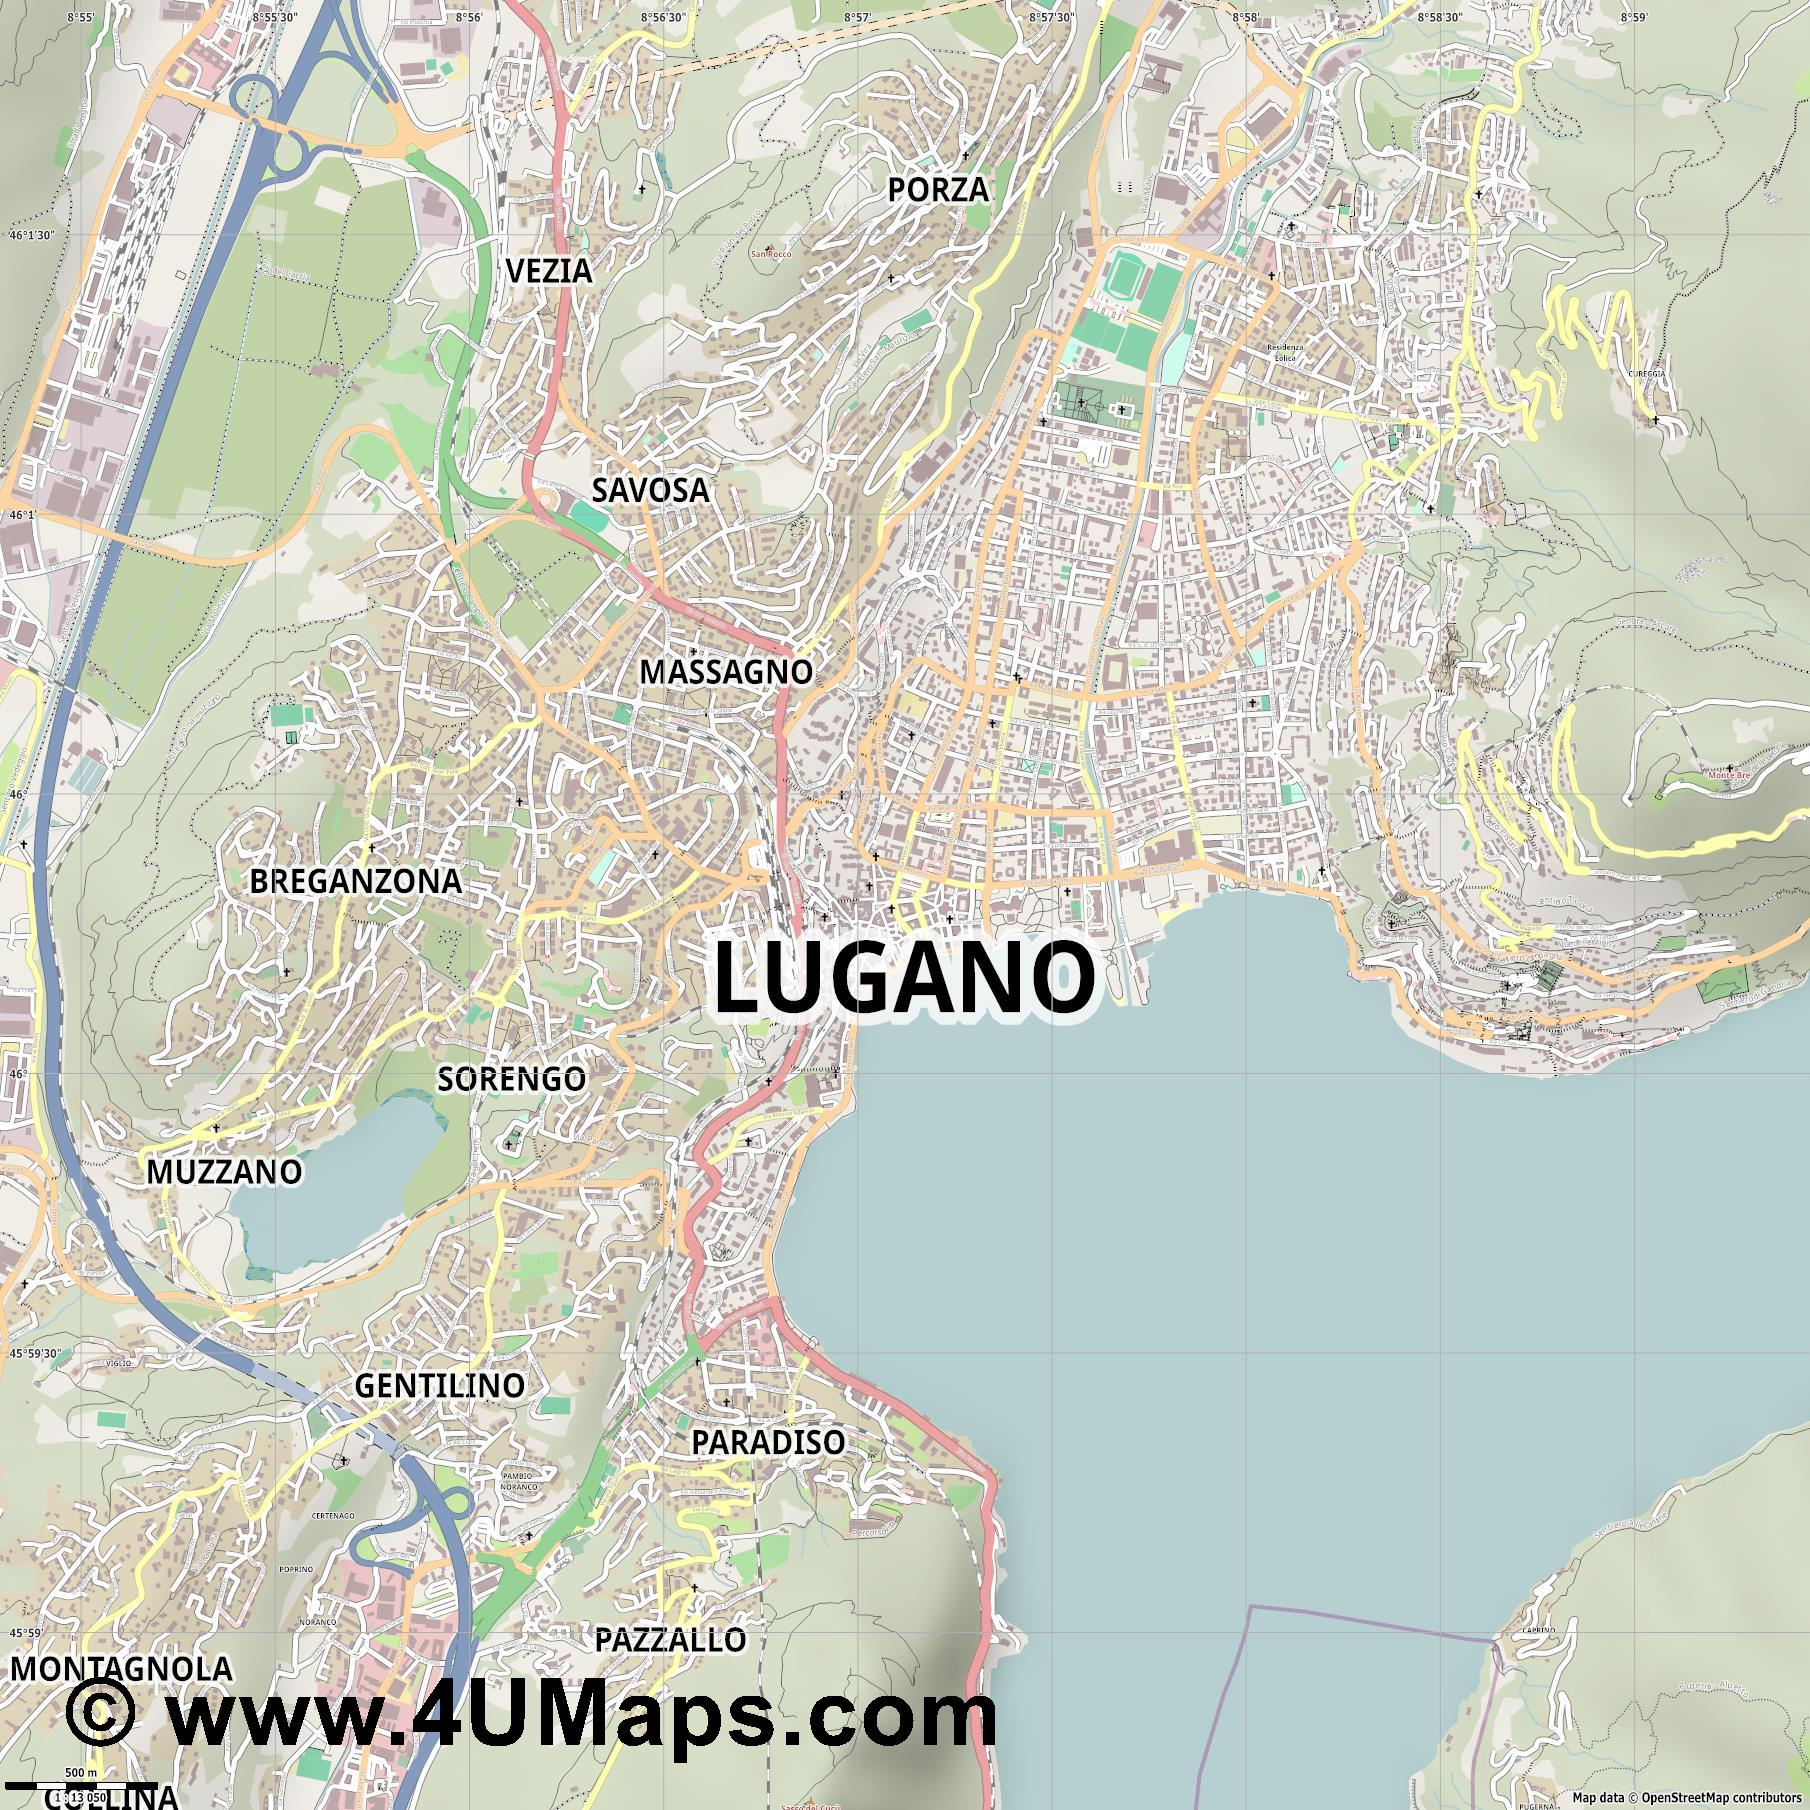 PDF, Svg Scalable Vector City Map Lugano